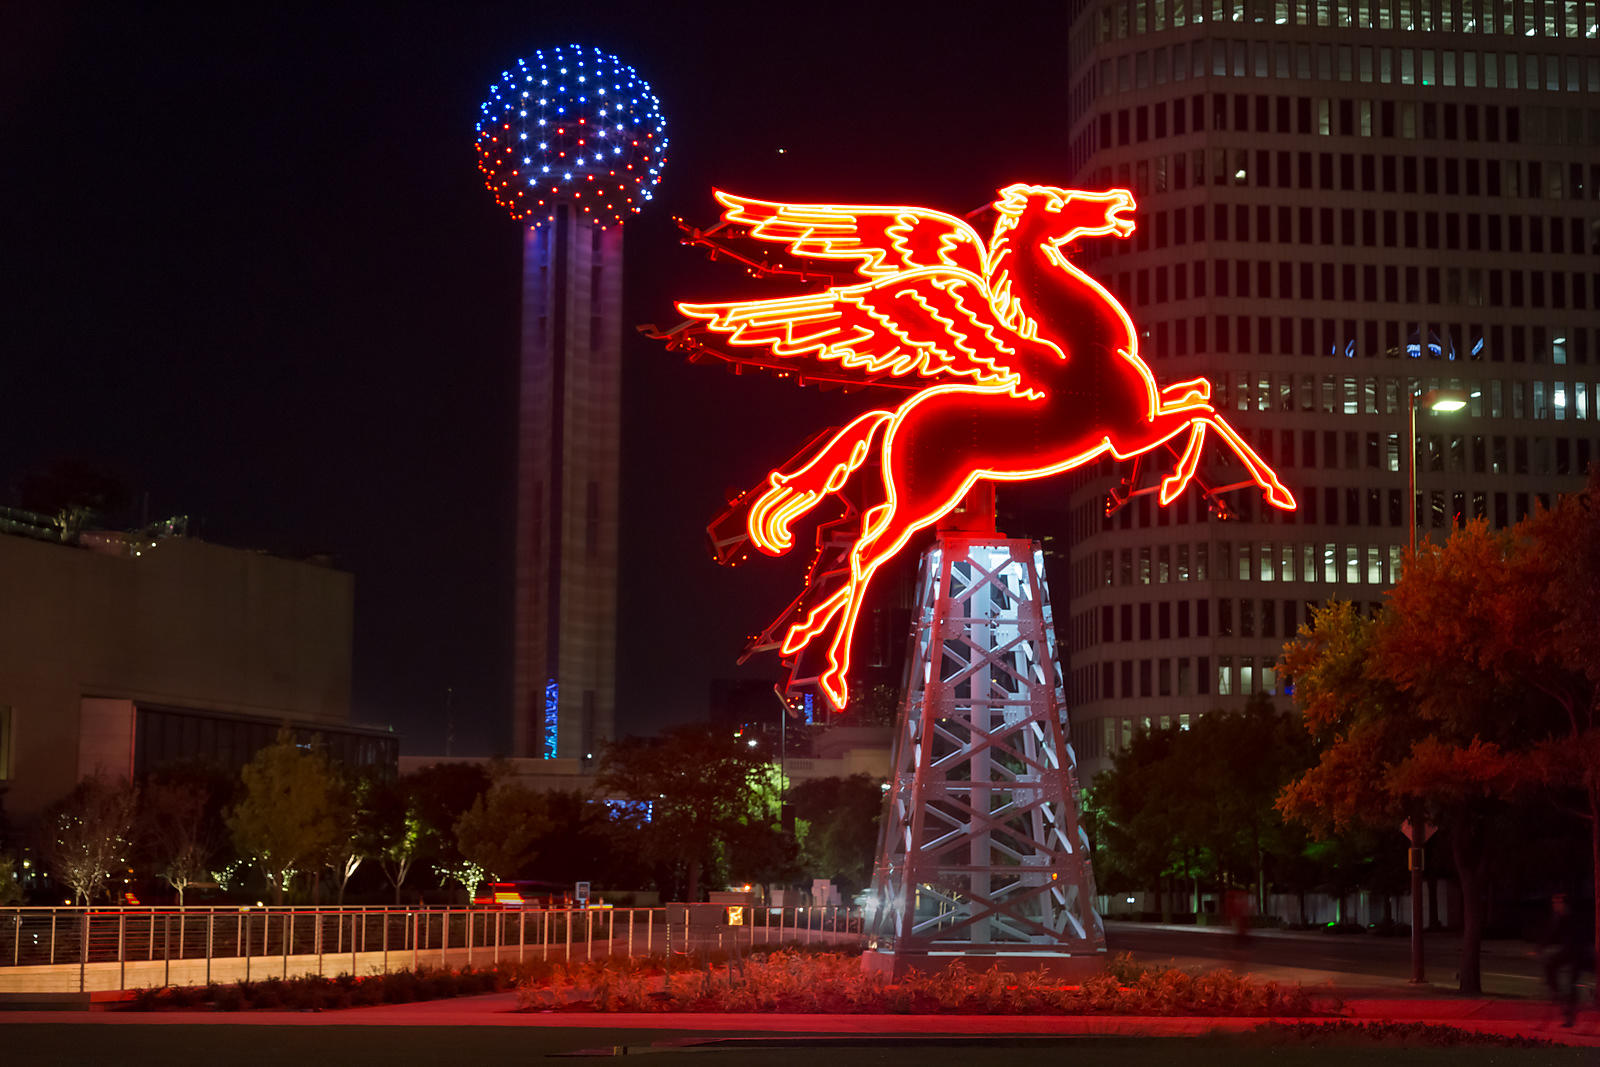 Pegasus and Reunion Tower